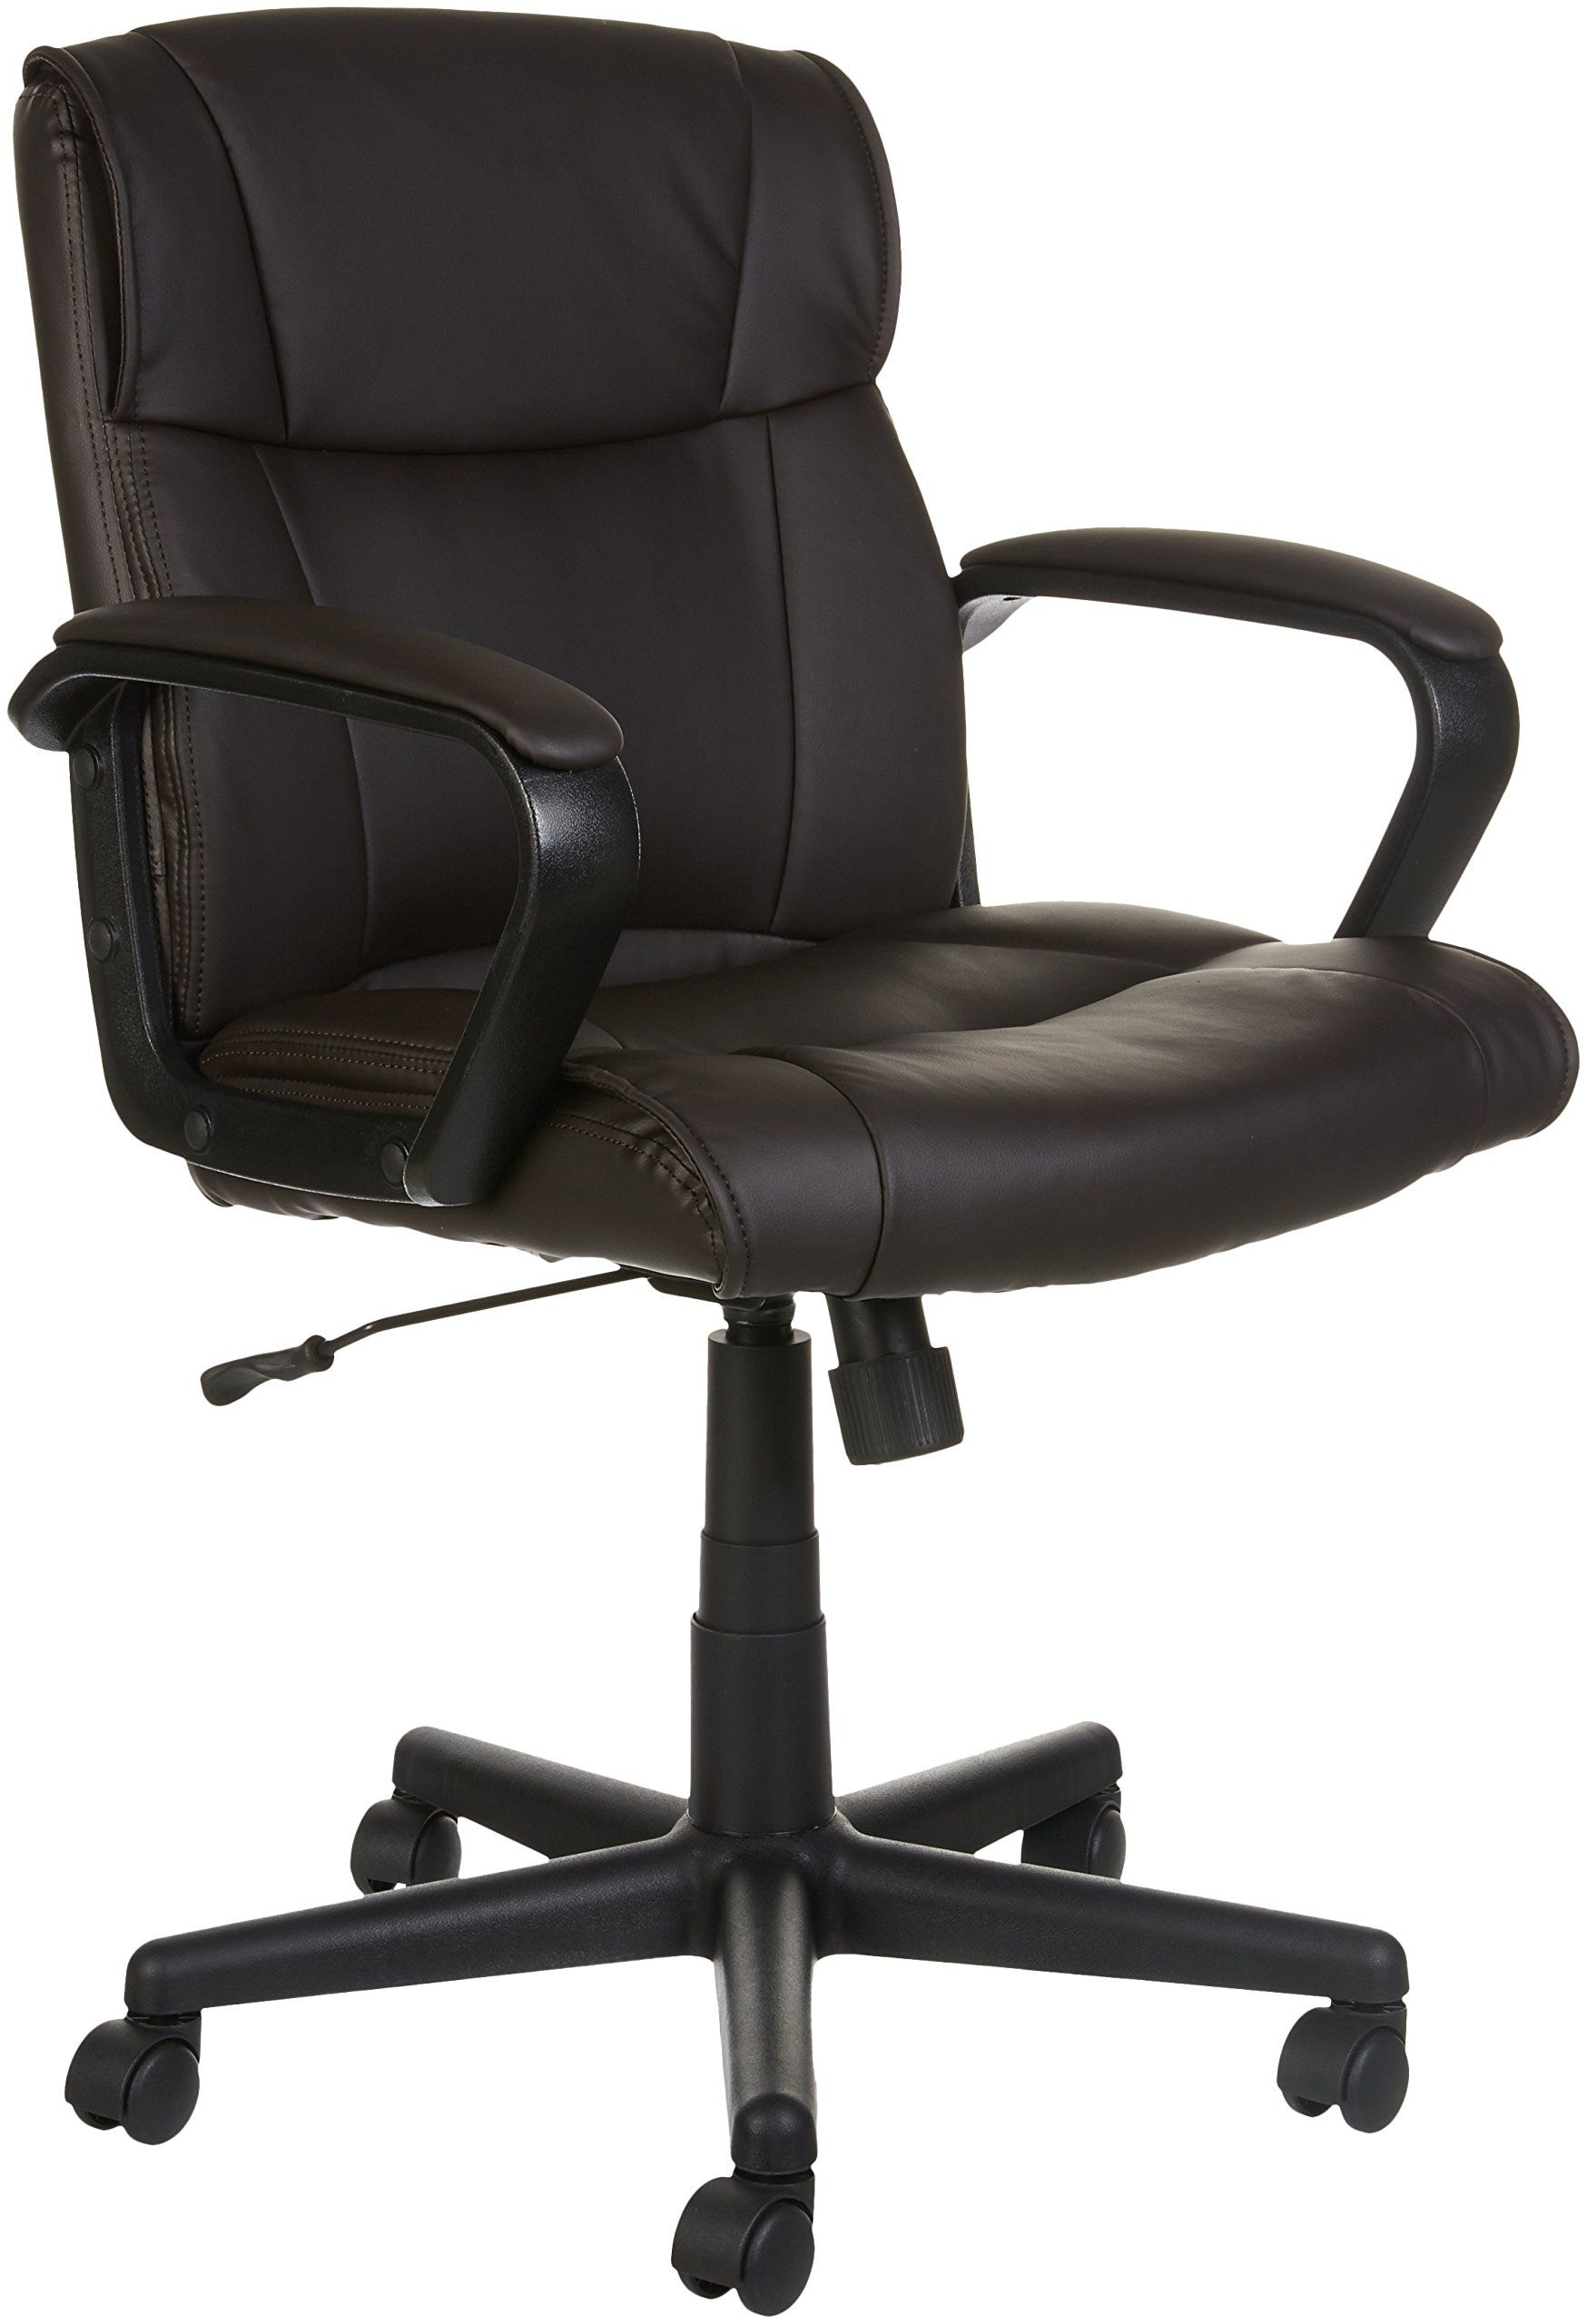 AmazonBasics MidBack Office Chair Brown *** You can get